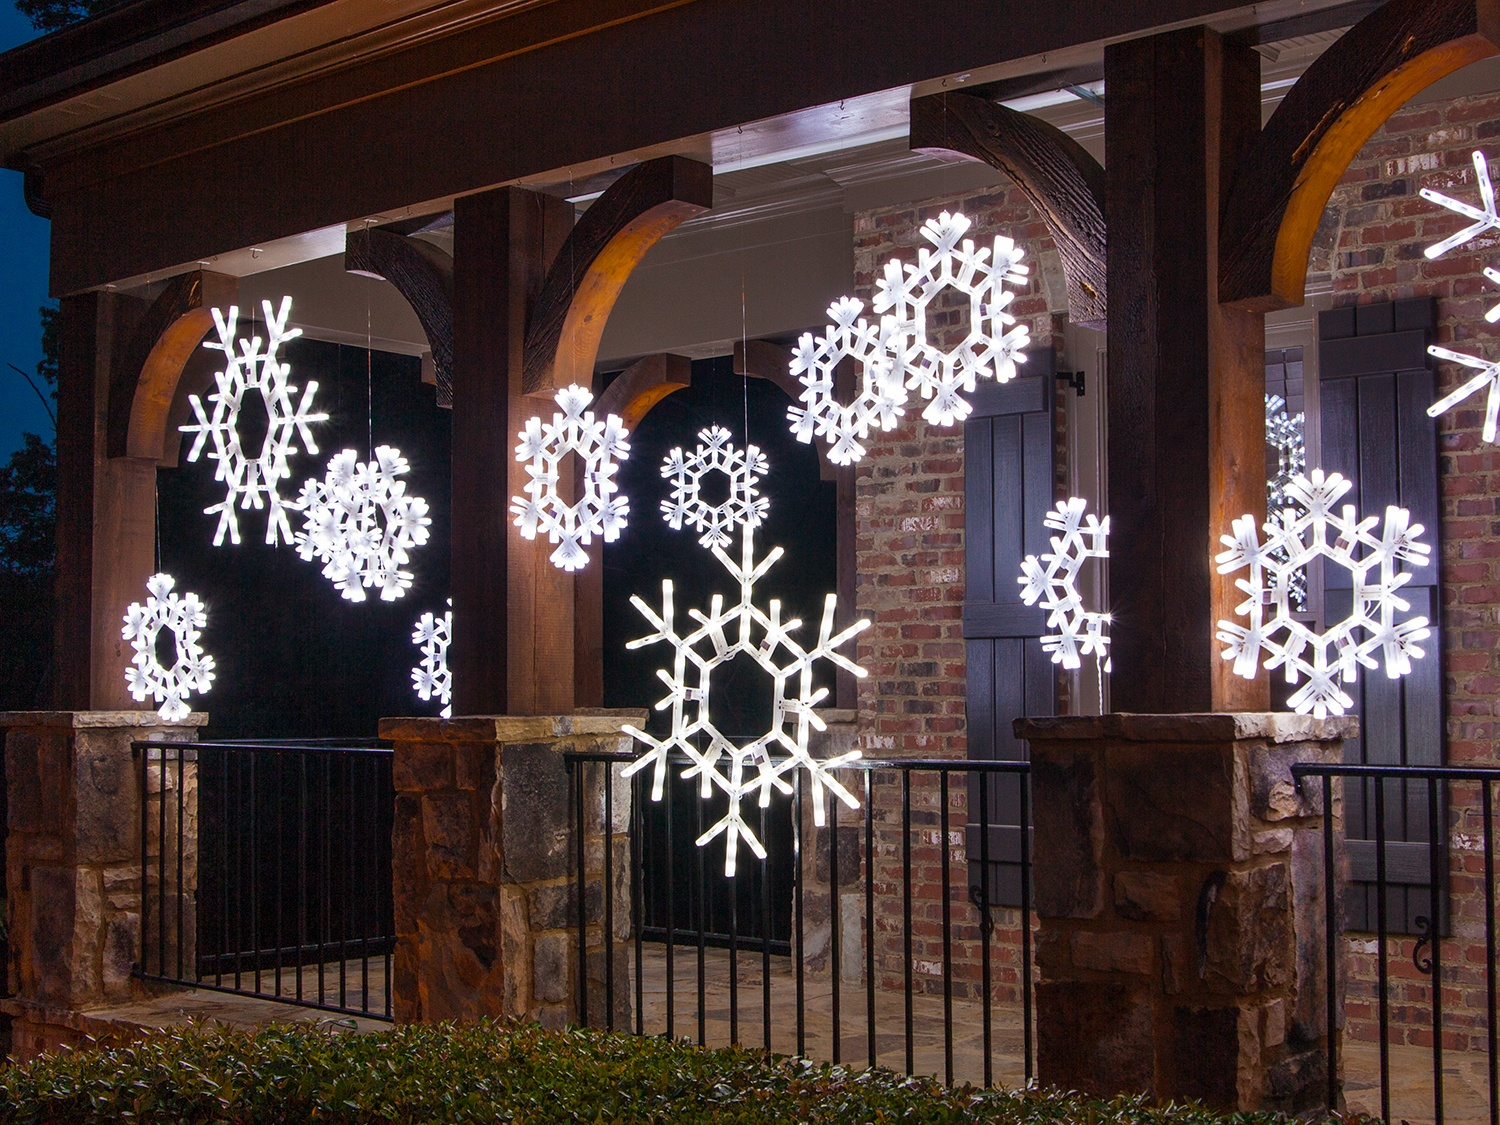 Hang Christmas snowflakes across the porch.